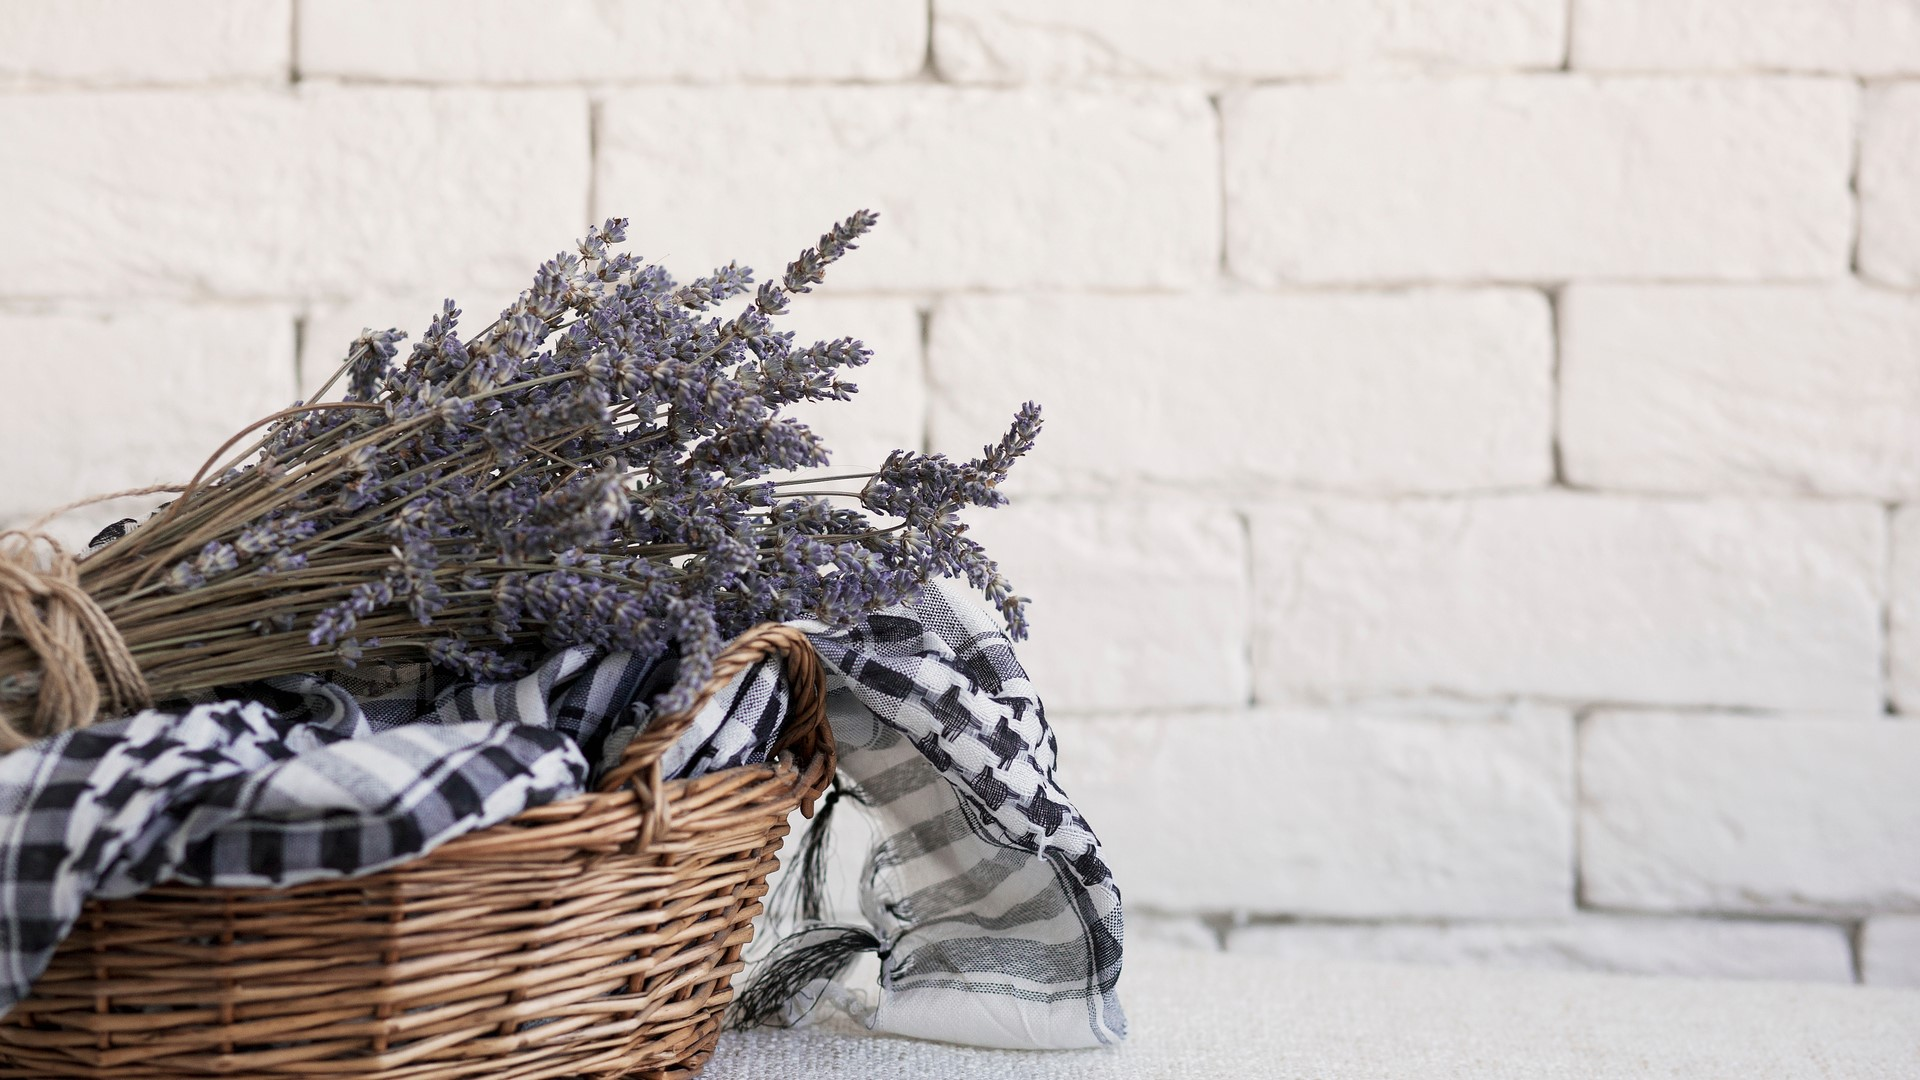 A wicker basket against a white-bricked wall filled with navy blue and white gingham napkins and a bundle of dried lavender sitting on the countertop of a country cottage-style home against a slaked whitewashed brick wall.